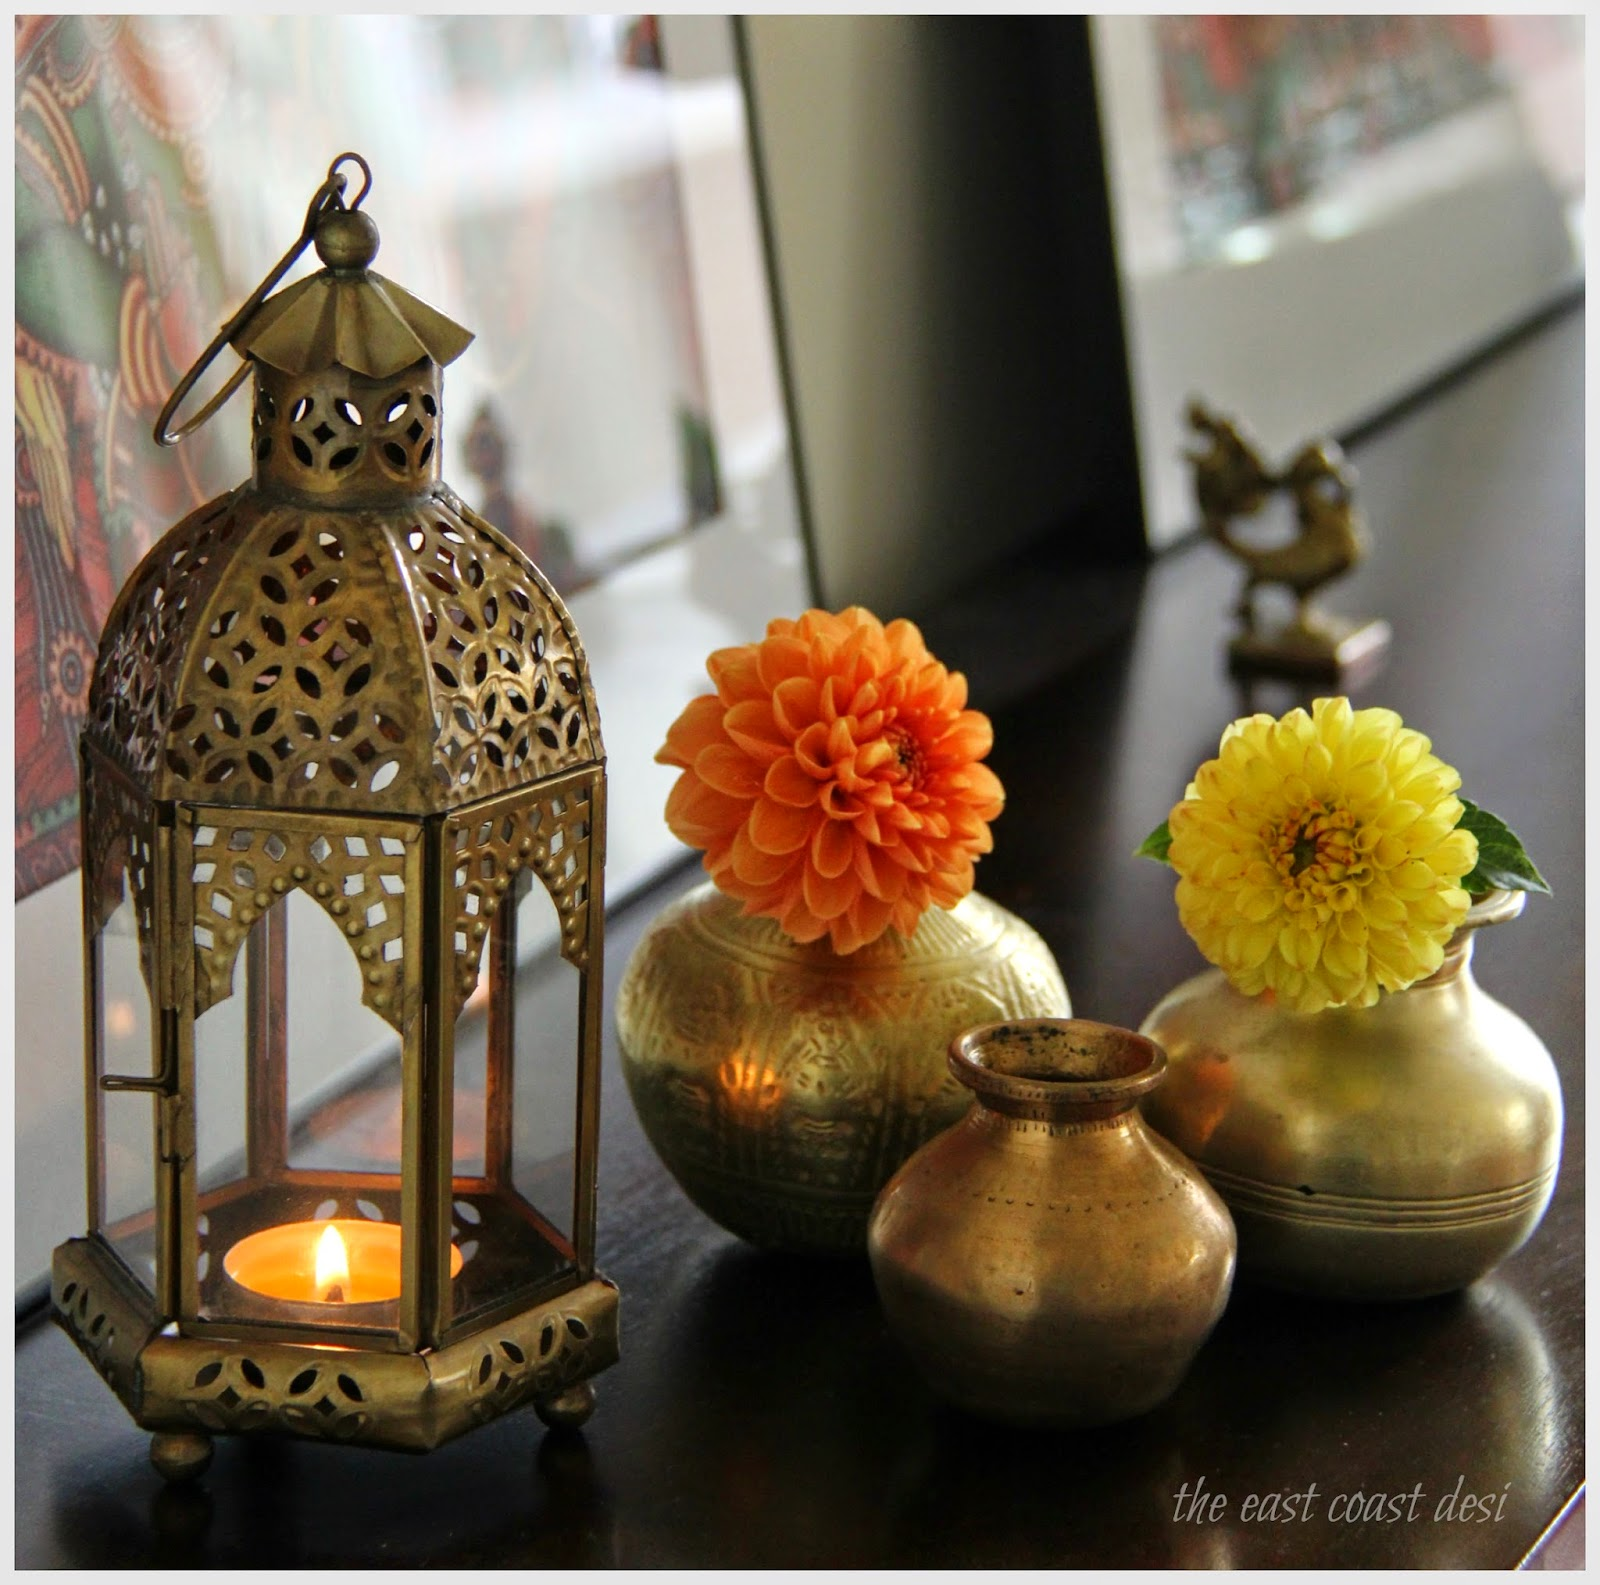 The east coast desi october 2014 for Home decorations in diwali